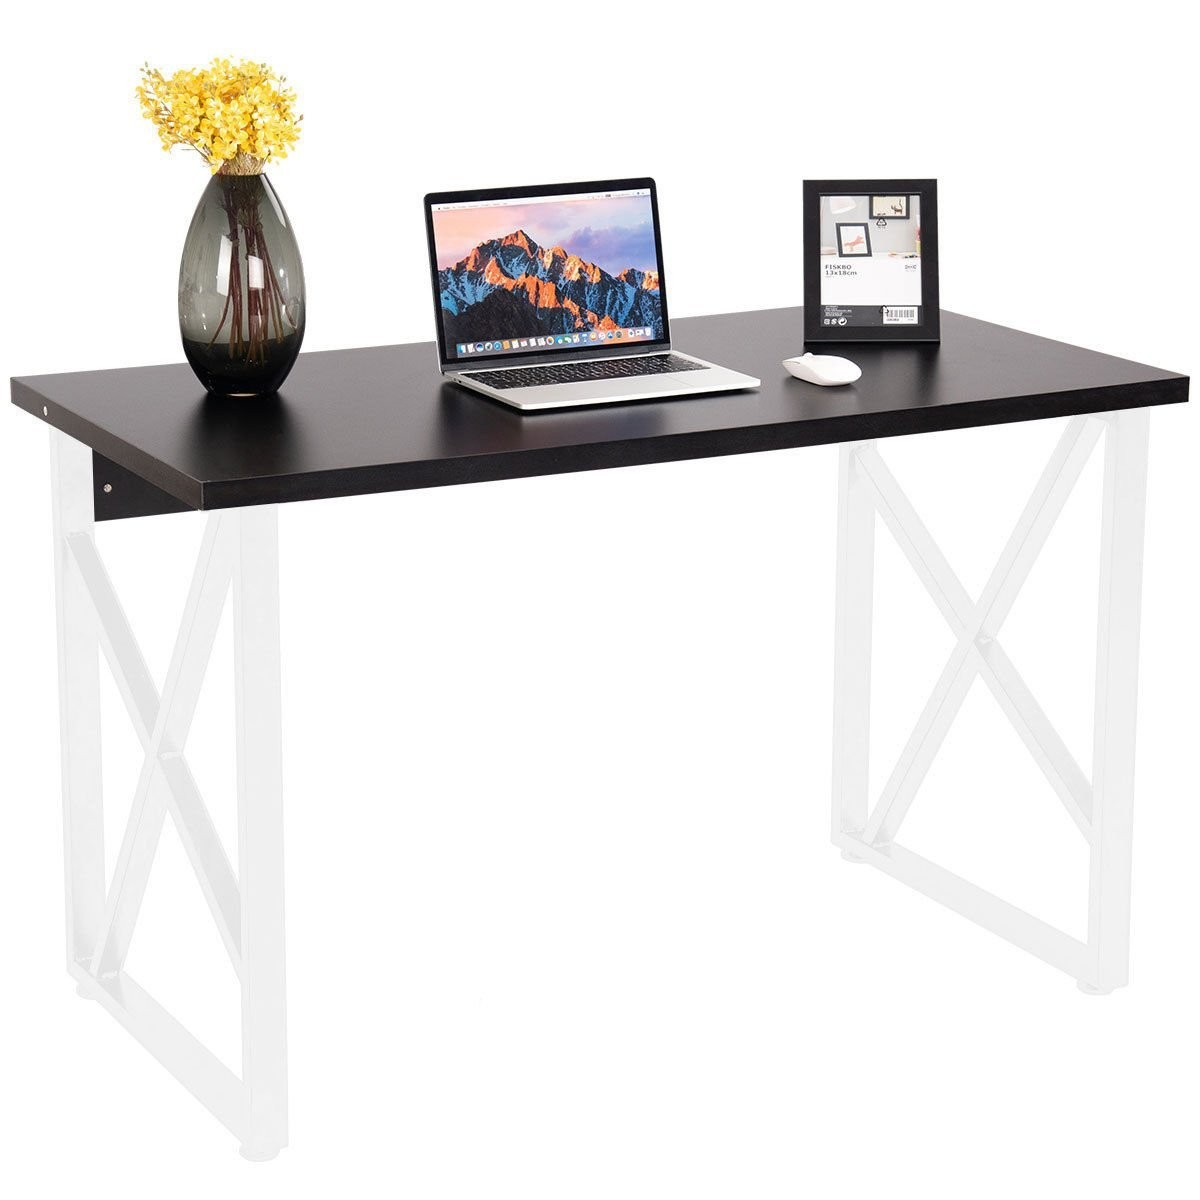 CHEFJOY Computer Desk PC Laptop Table Wood Workstation Study Home Office Furniture (White and Black)